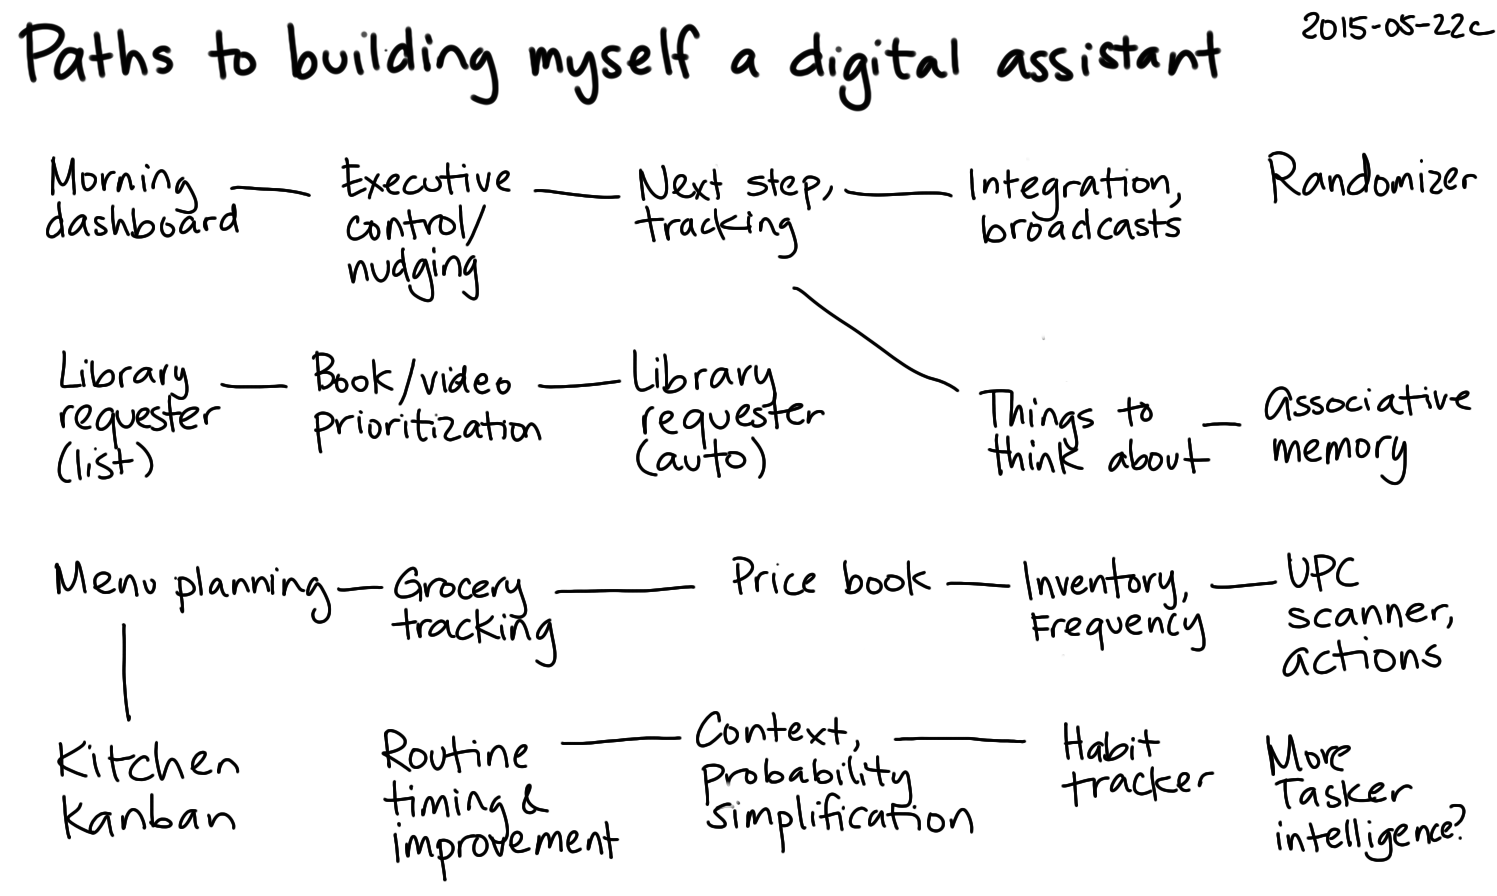 2015-05-22c Paths to building myself a digital assistant -- index card #future-tools #plans #pda.png